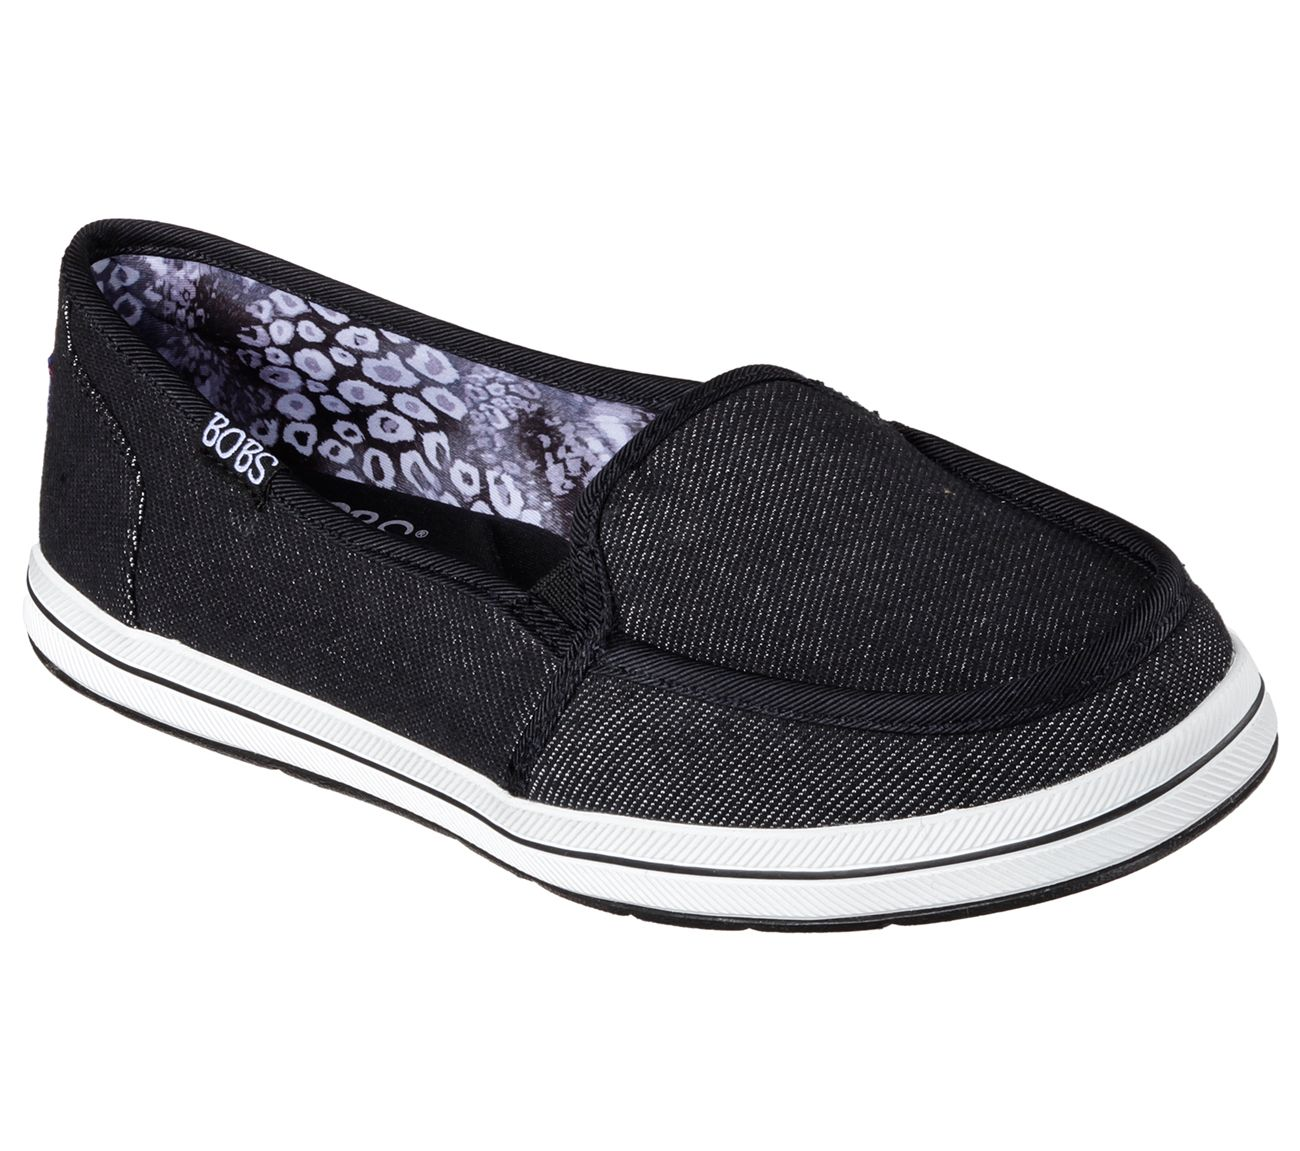 92e6975d3f58b Get+some+comfy+jeans+for+your+feet+with+the+SKECHERS+Bobs+Flexy+-+Back+ Spring+shoe.